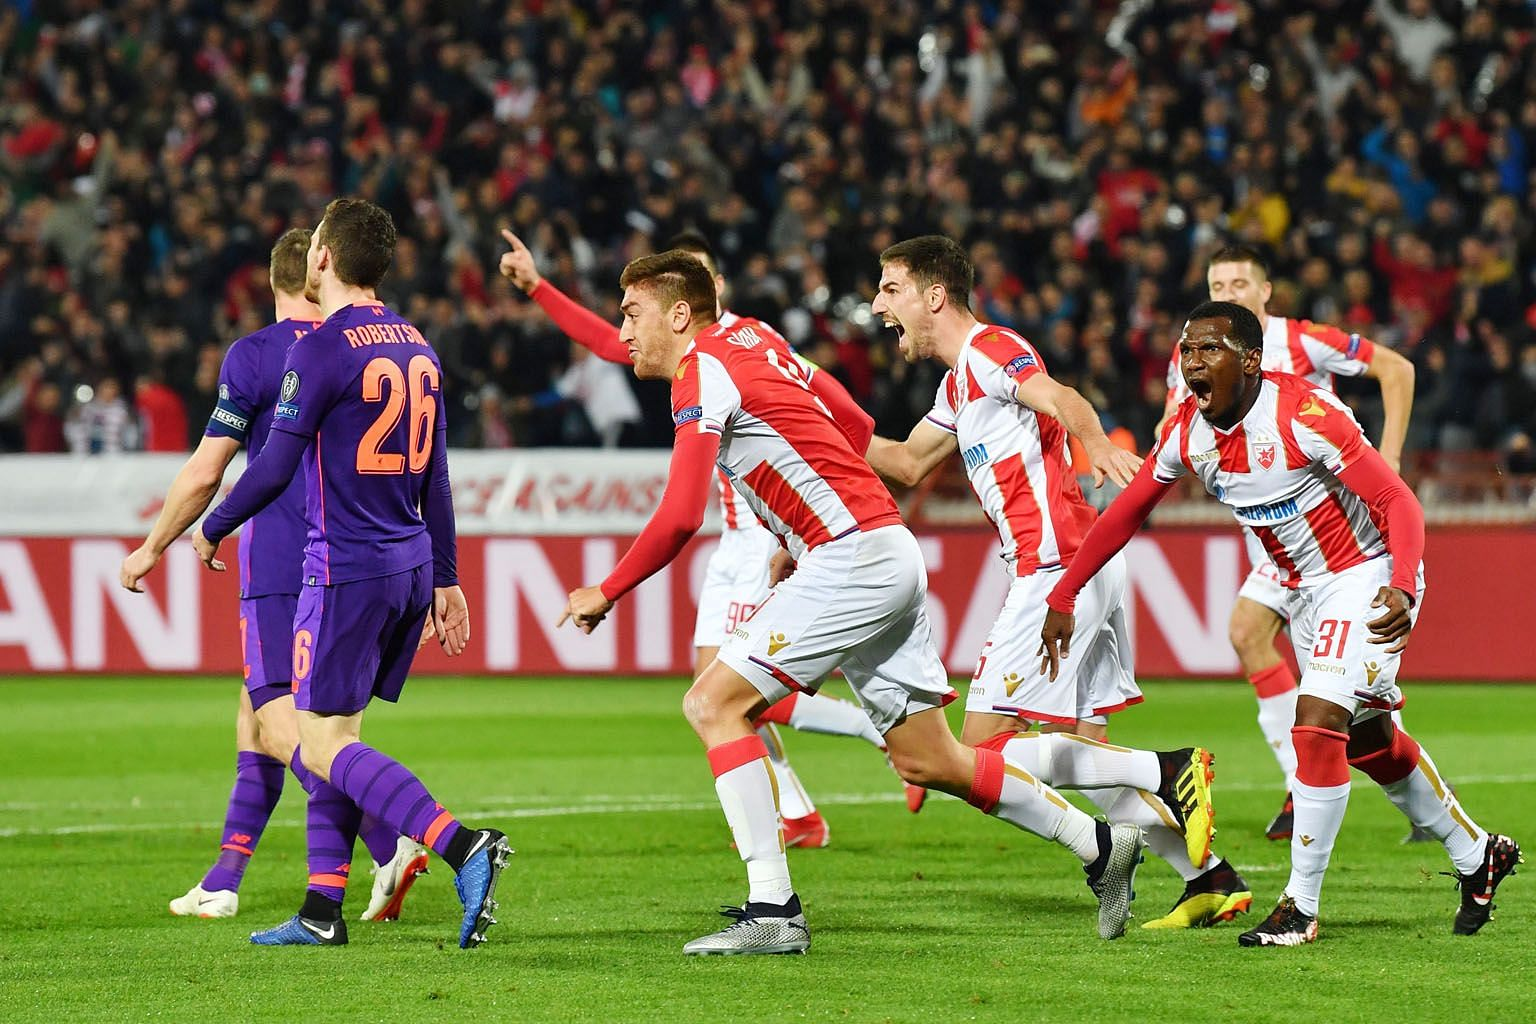 Red Star Belgrade's Milan Pavkov (centre) celebrates his first goal against Liverpool after heading home from a corner. He later doubled his tally as the Serbian champions recorded their first Champions League win this season.